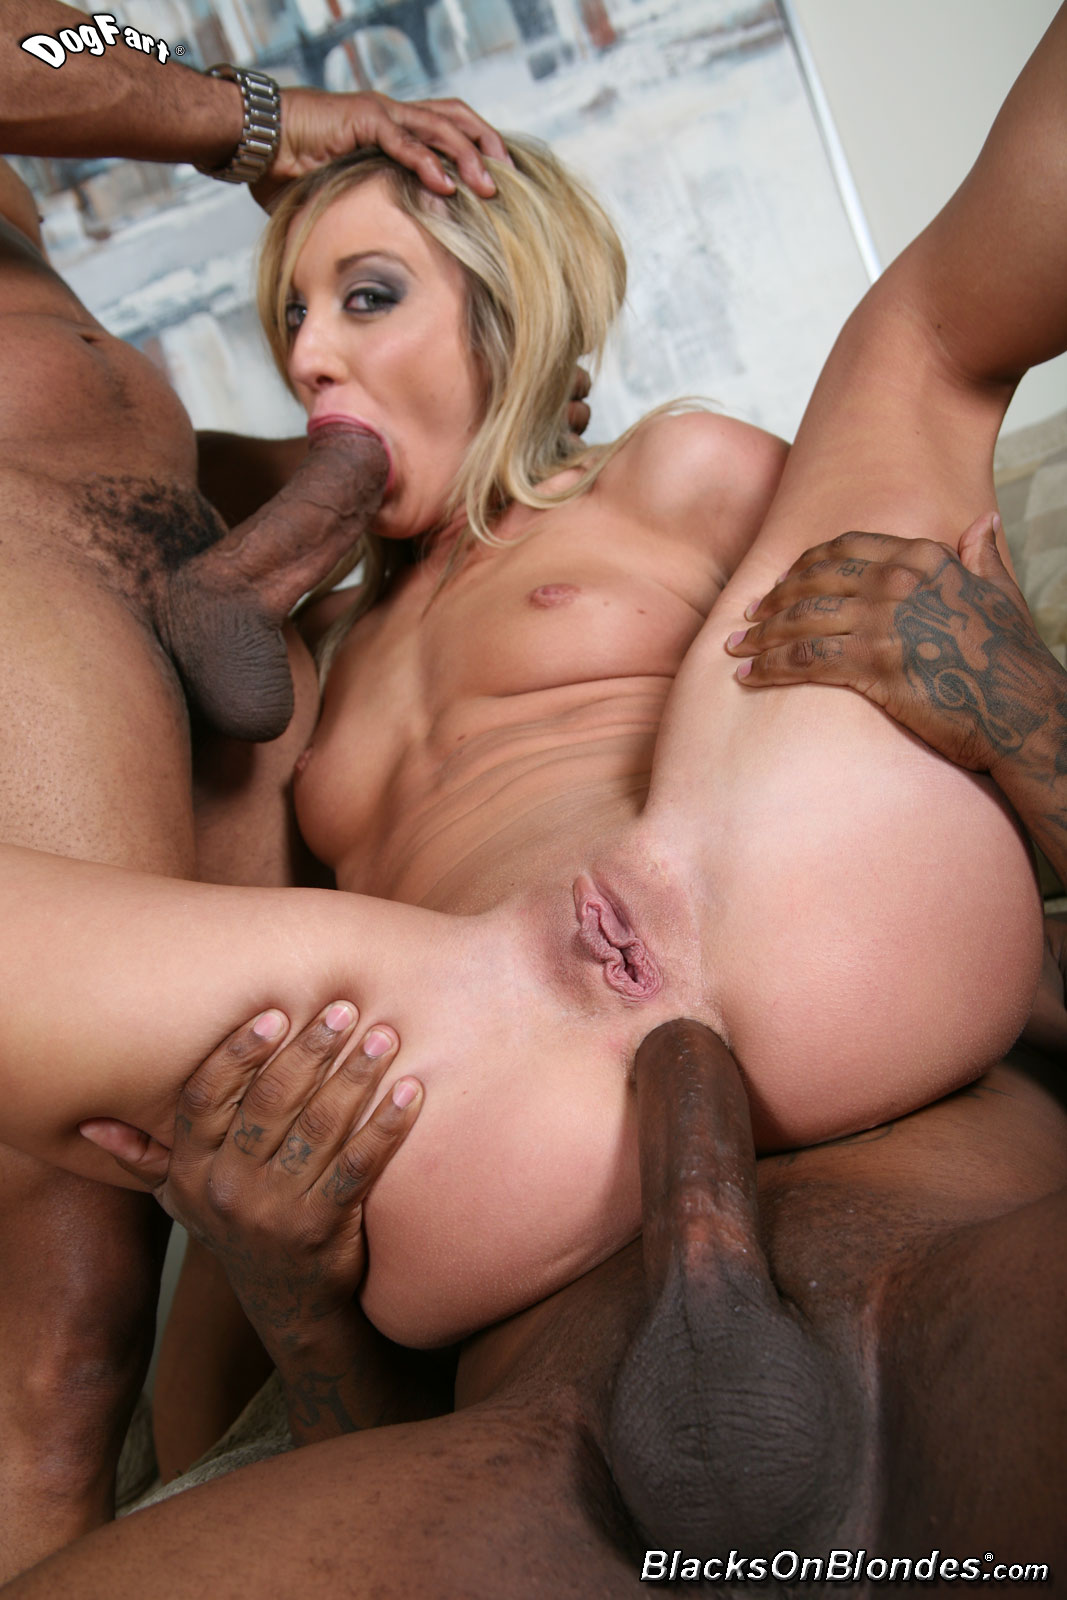 blacks on blonds sex